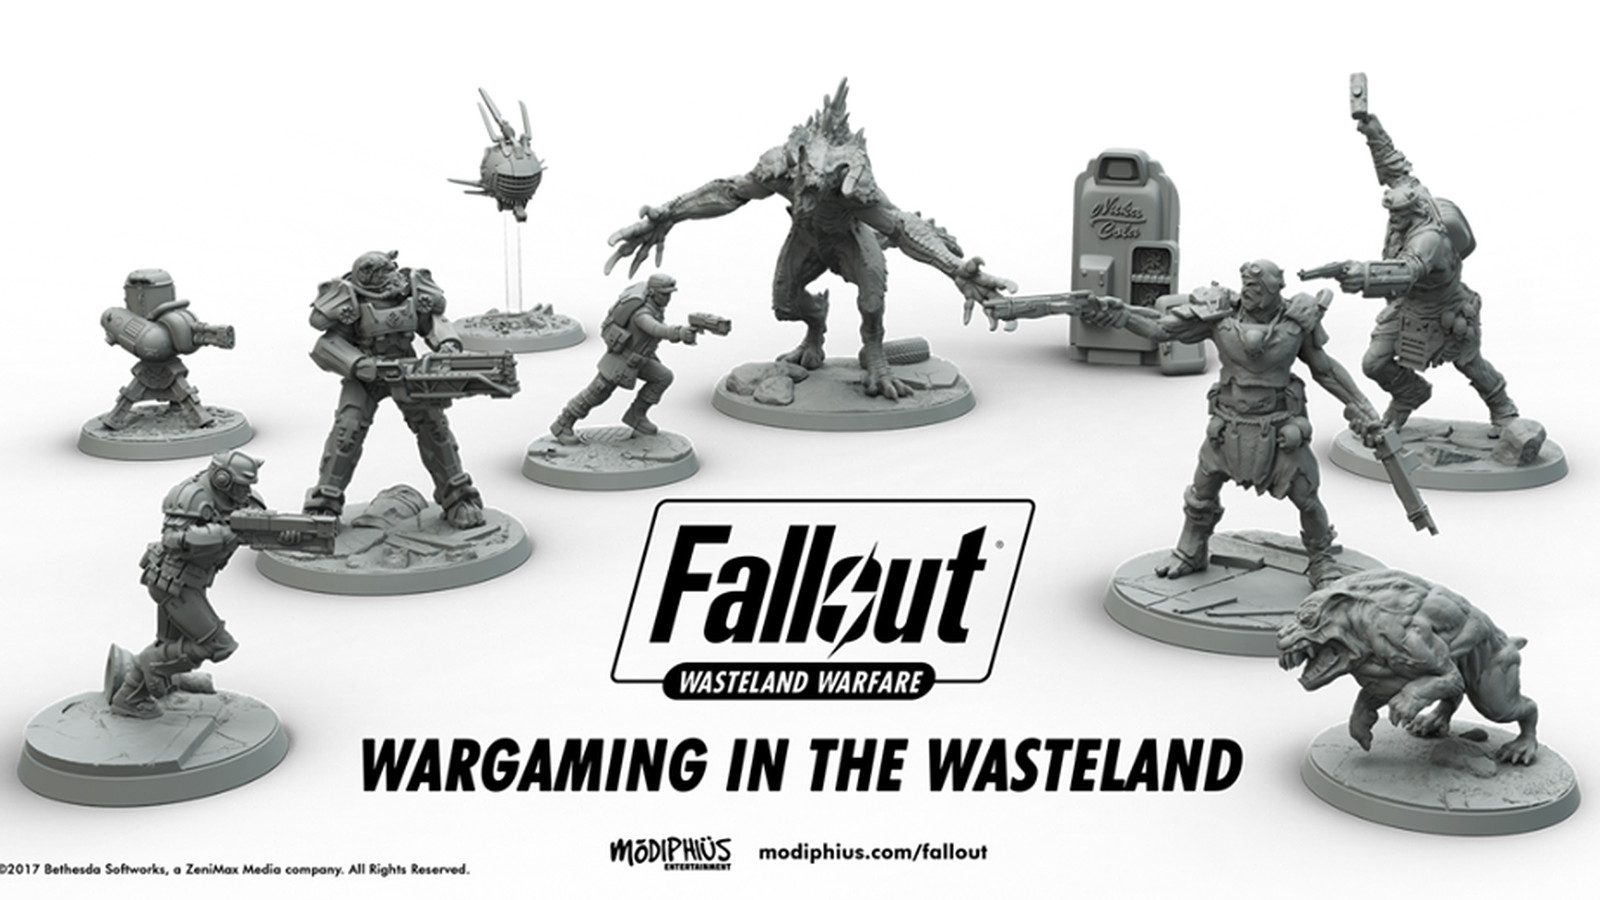 A Fallout tabletop game is on the way